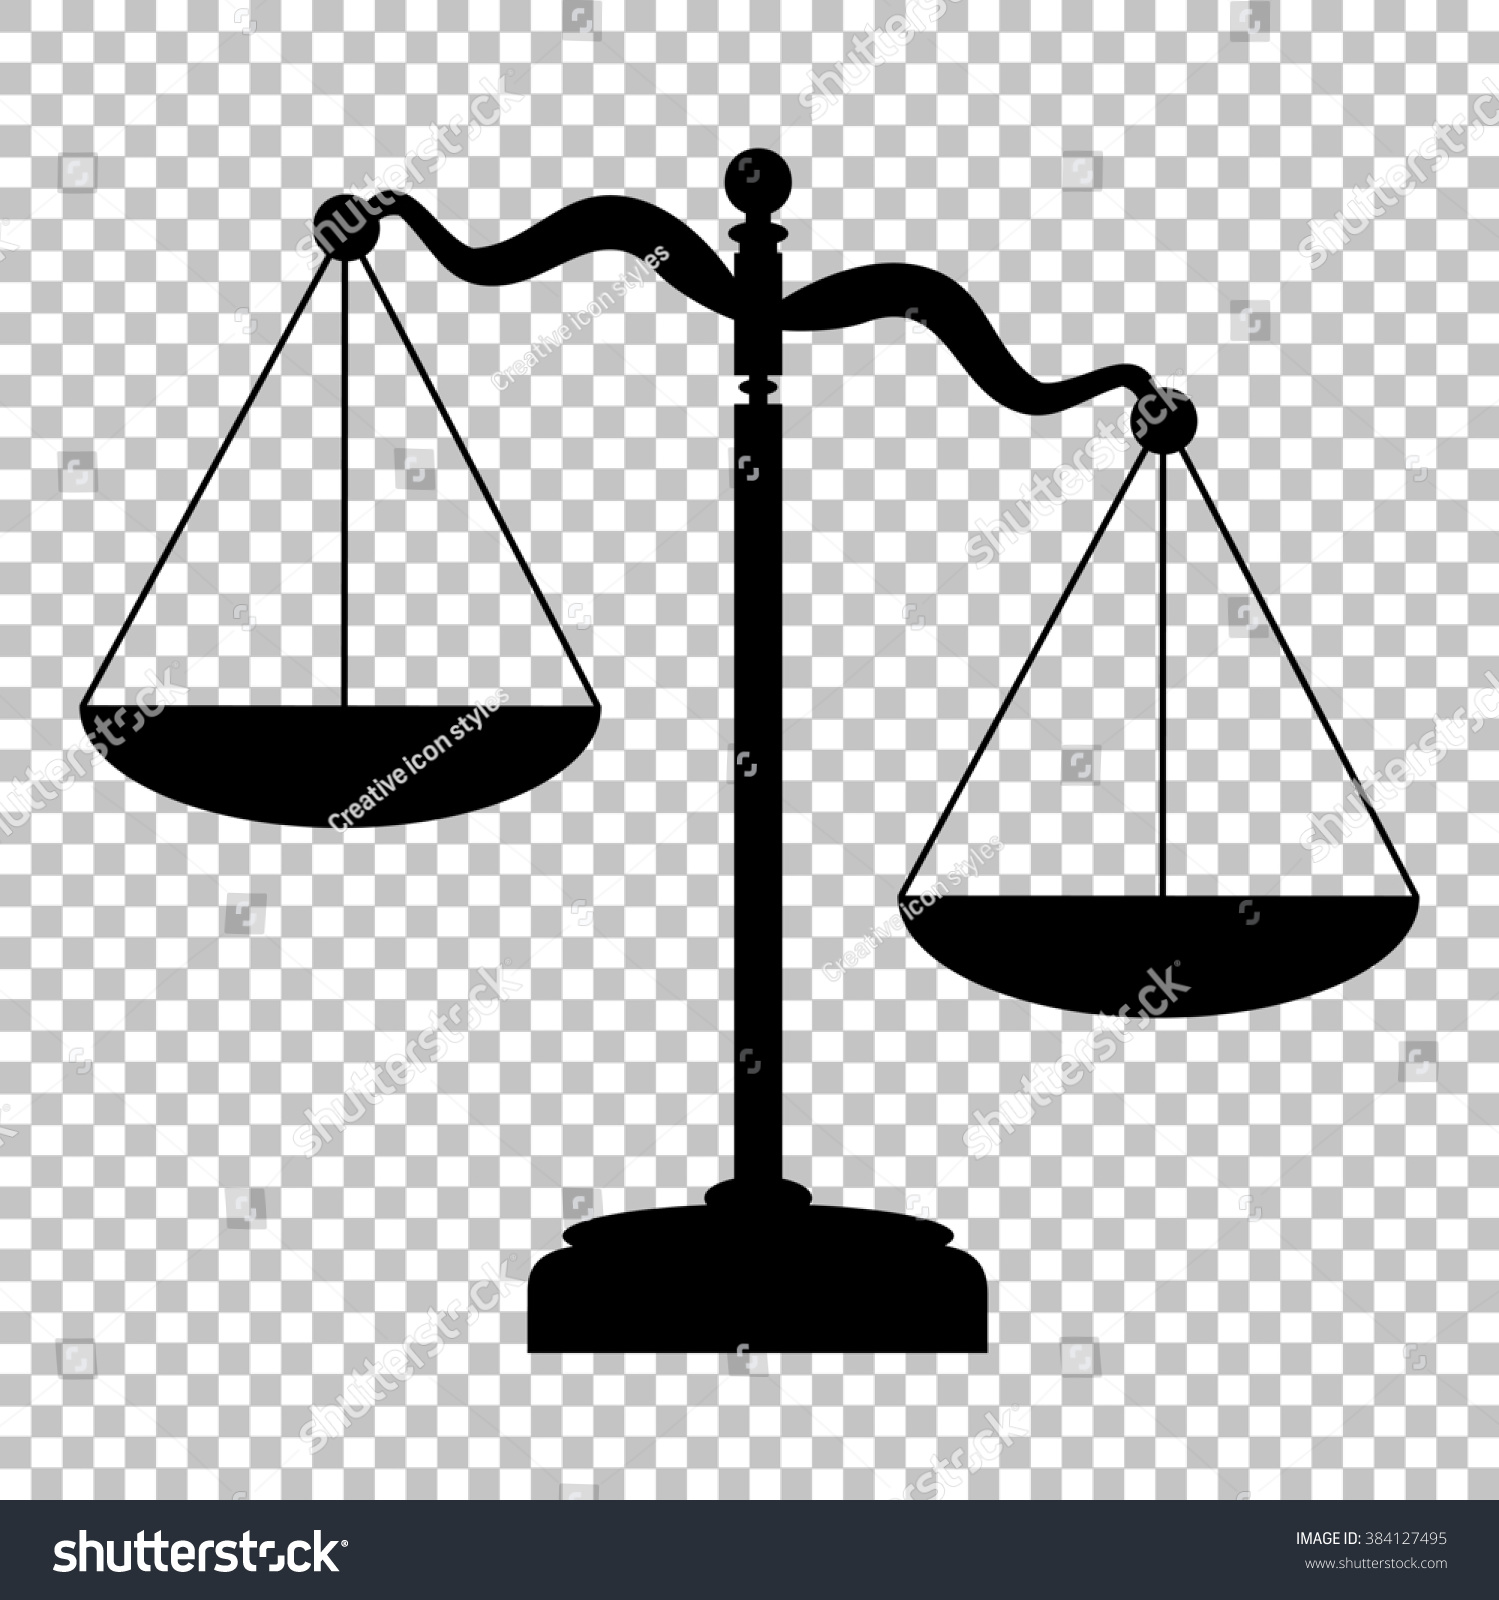 scales justice sign flat style icon stock illustration scales of justice clip art free images scales of justice clip art free